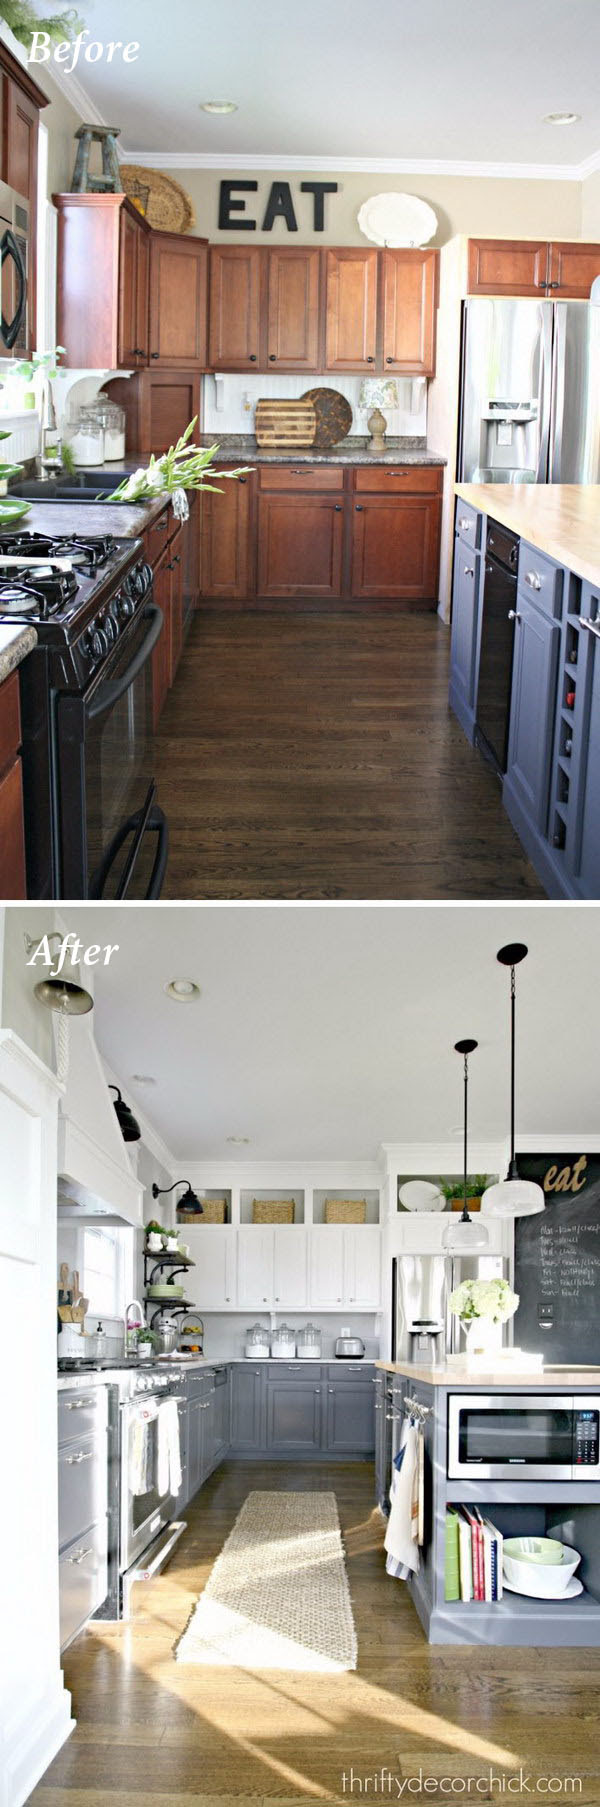 Genius Kitchen Makeover Ideas That Would Save You Money ...